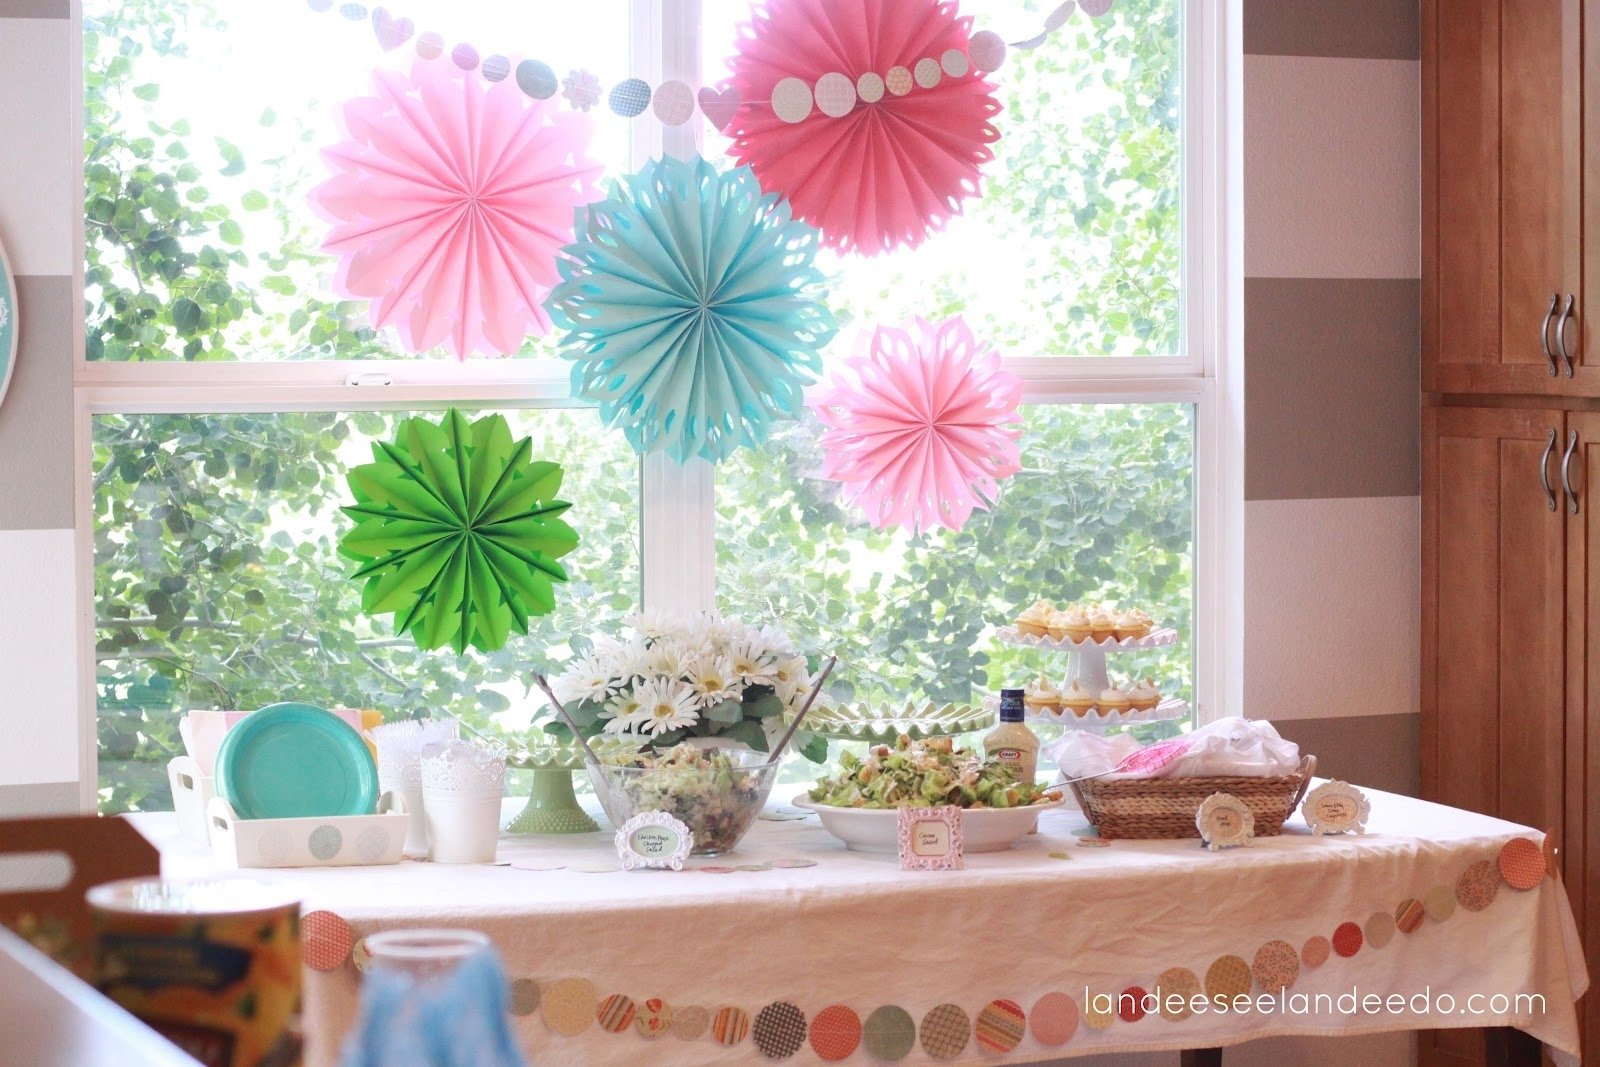 10 Most Recommended Bridal Shower Decoration Ideas